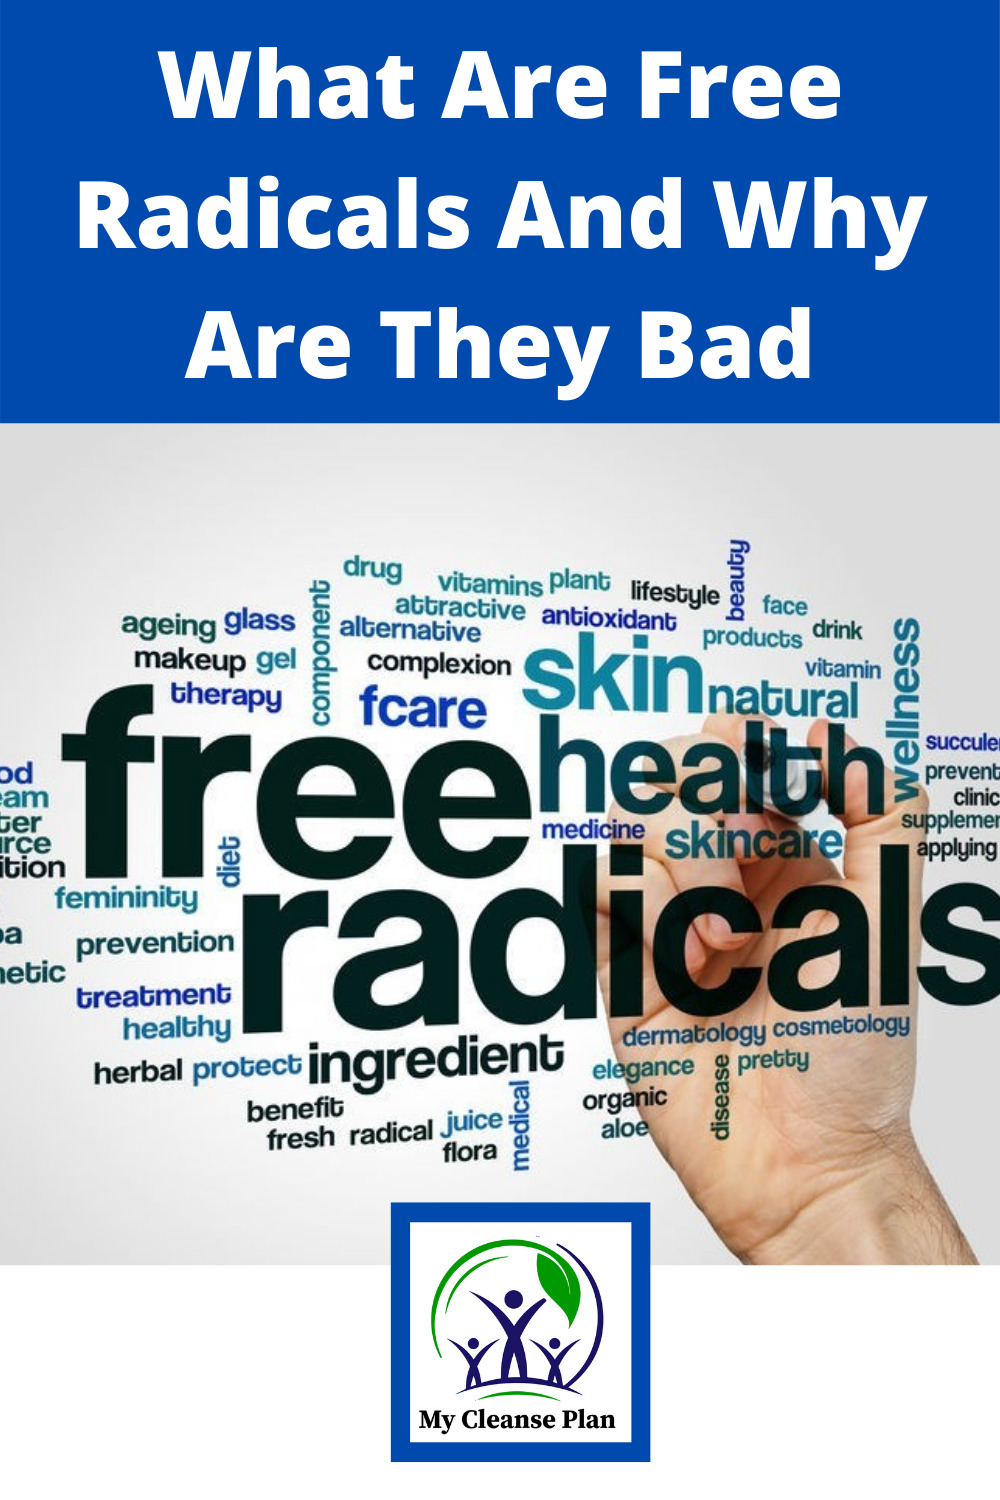 What Are Free Radicals And Why Are They Bad